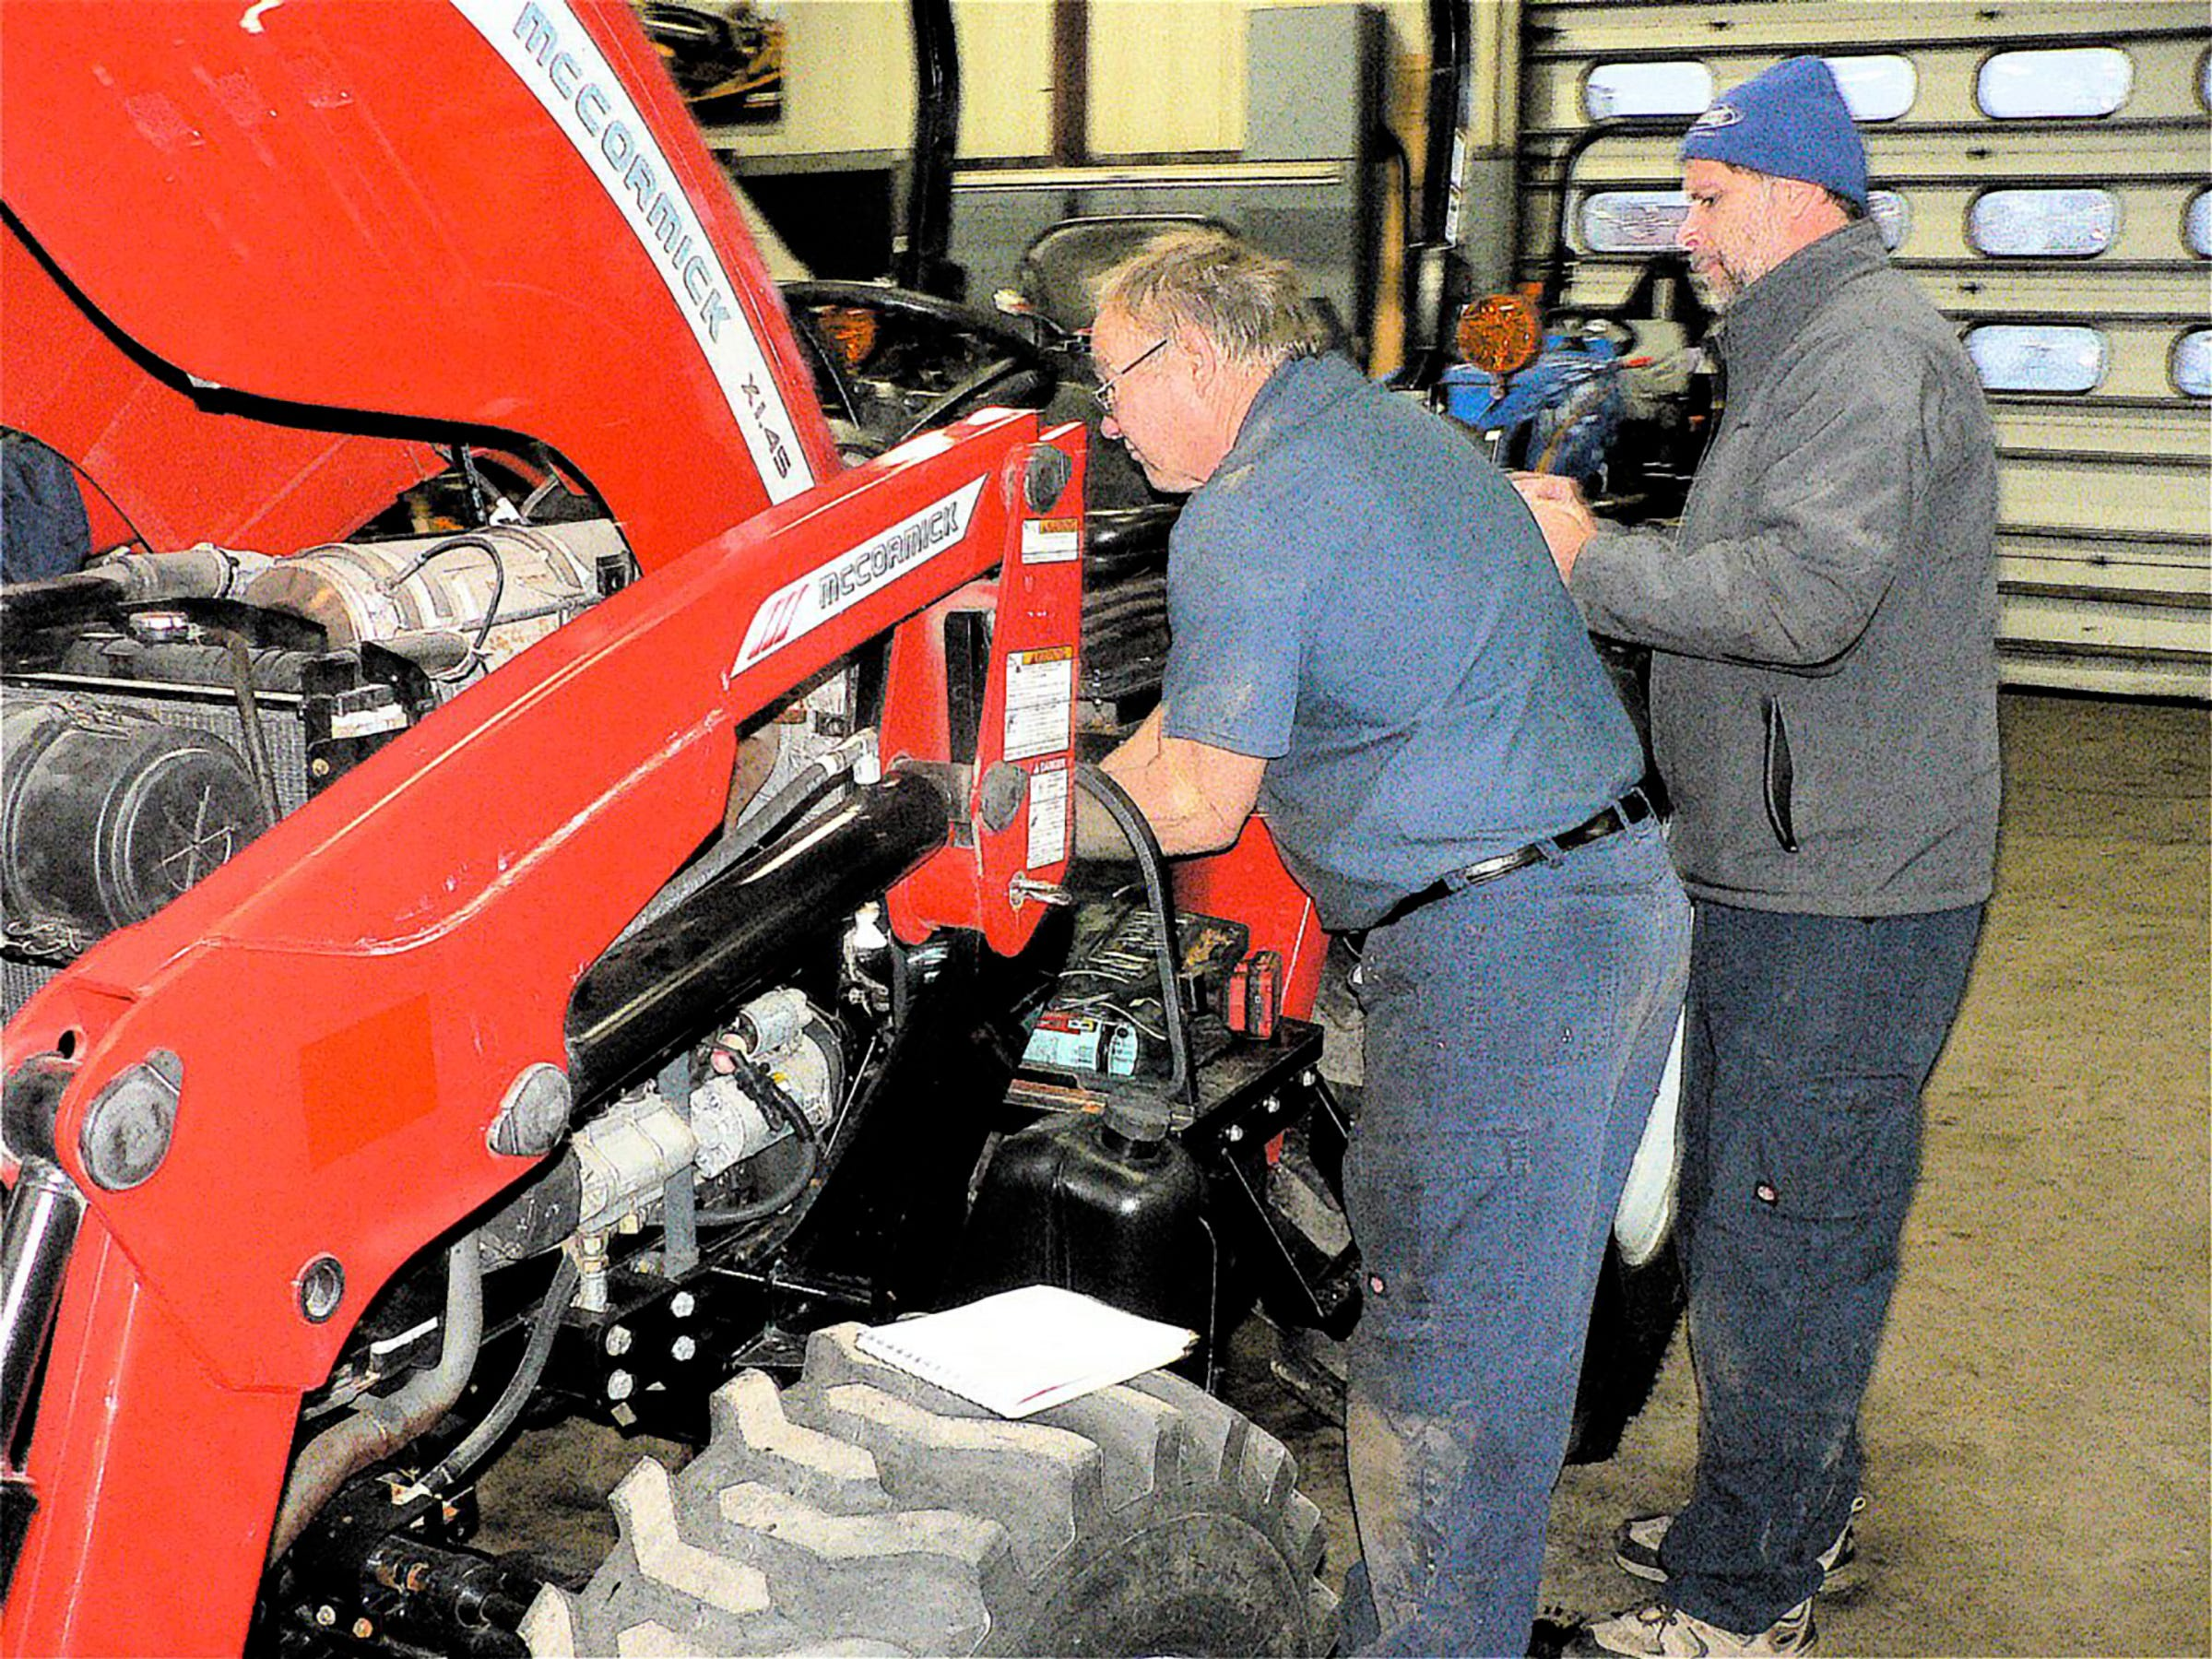 Ken Davidson and Steve Wambold working on a tractor.